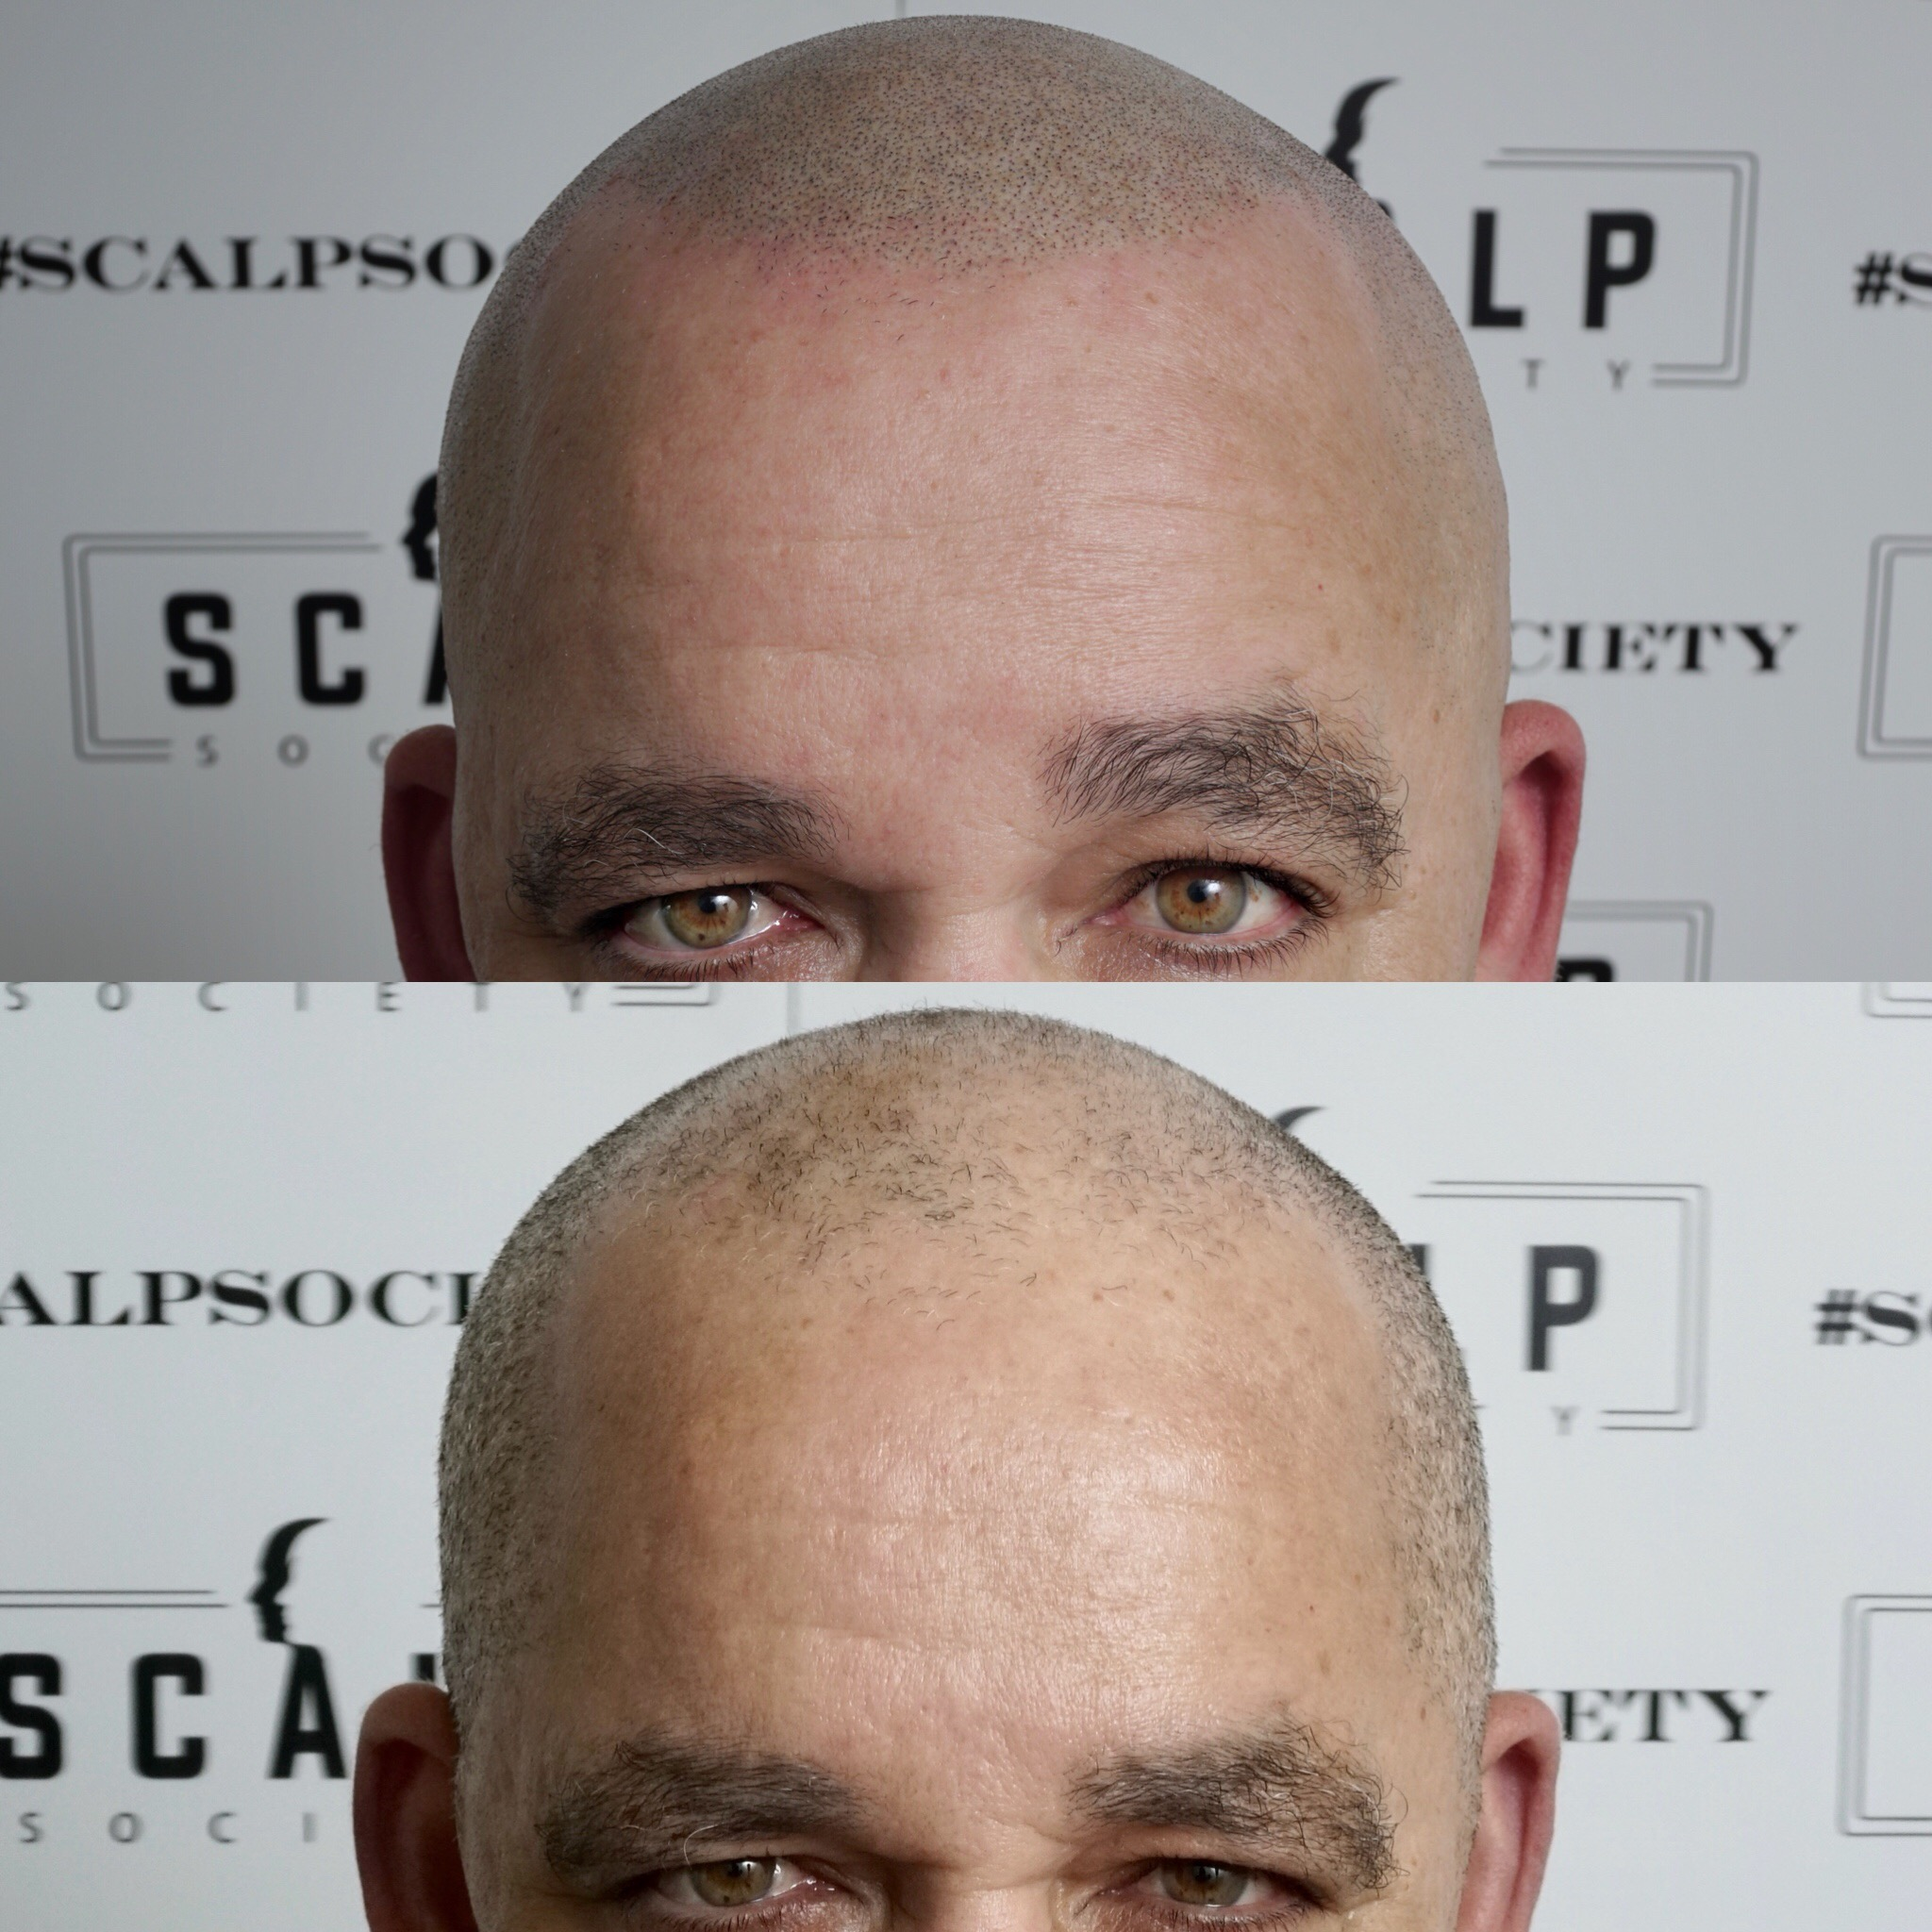 Male 62.Micropigmentation is for all ages. We specialize in making your hairline look as natural as possible.